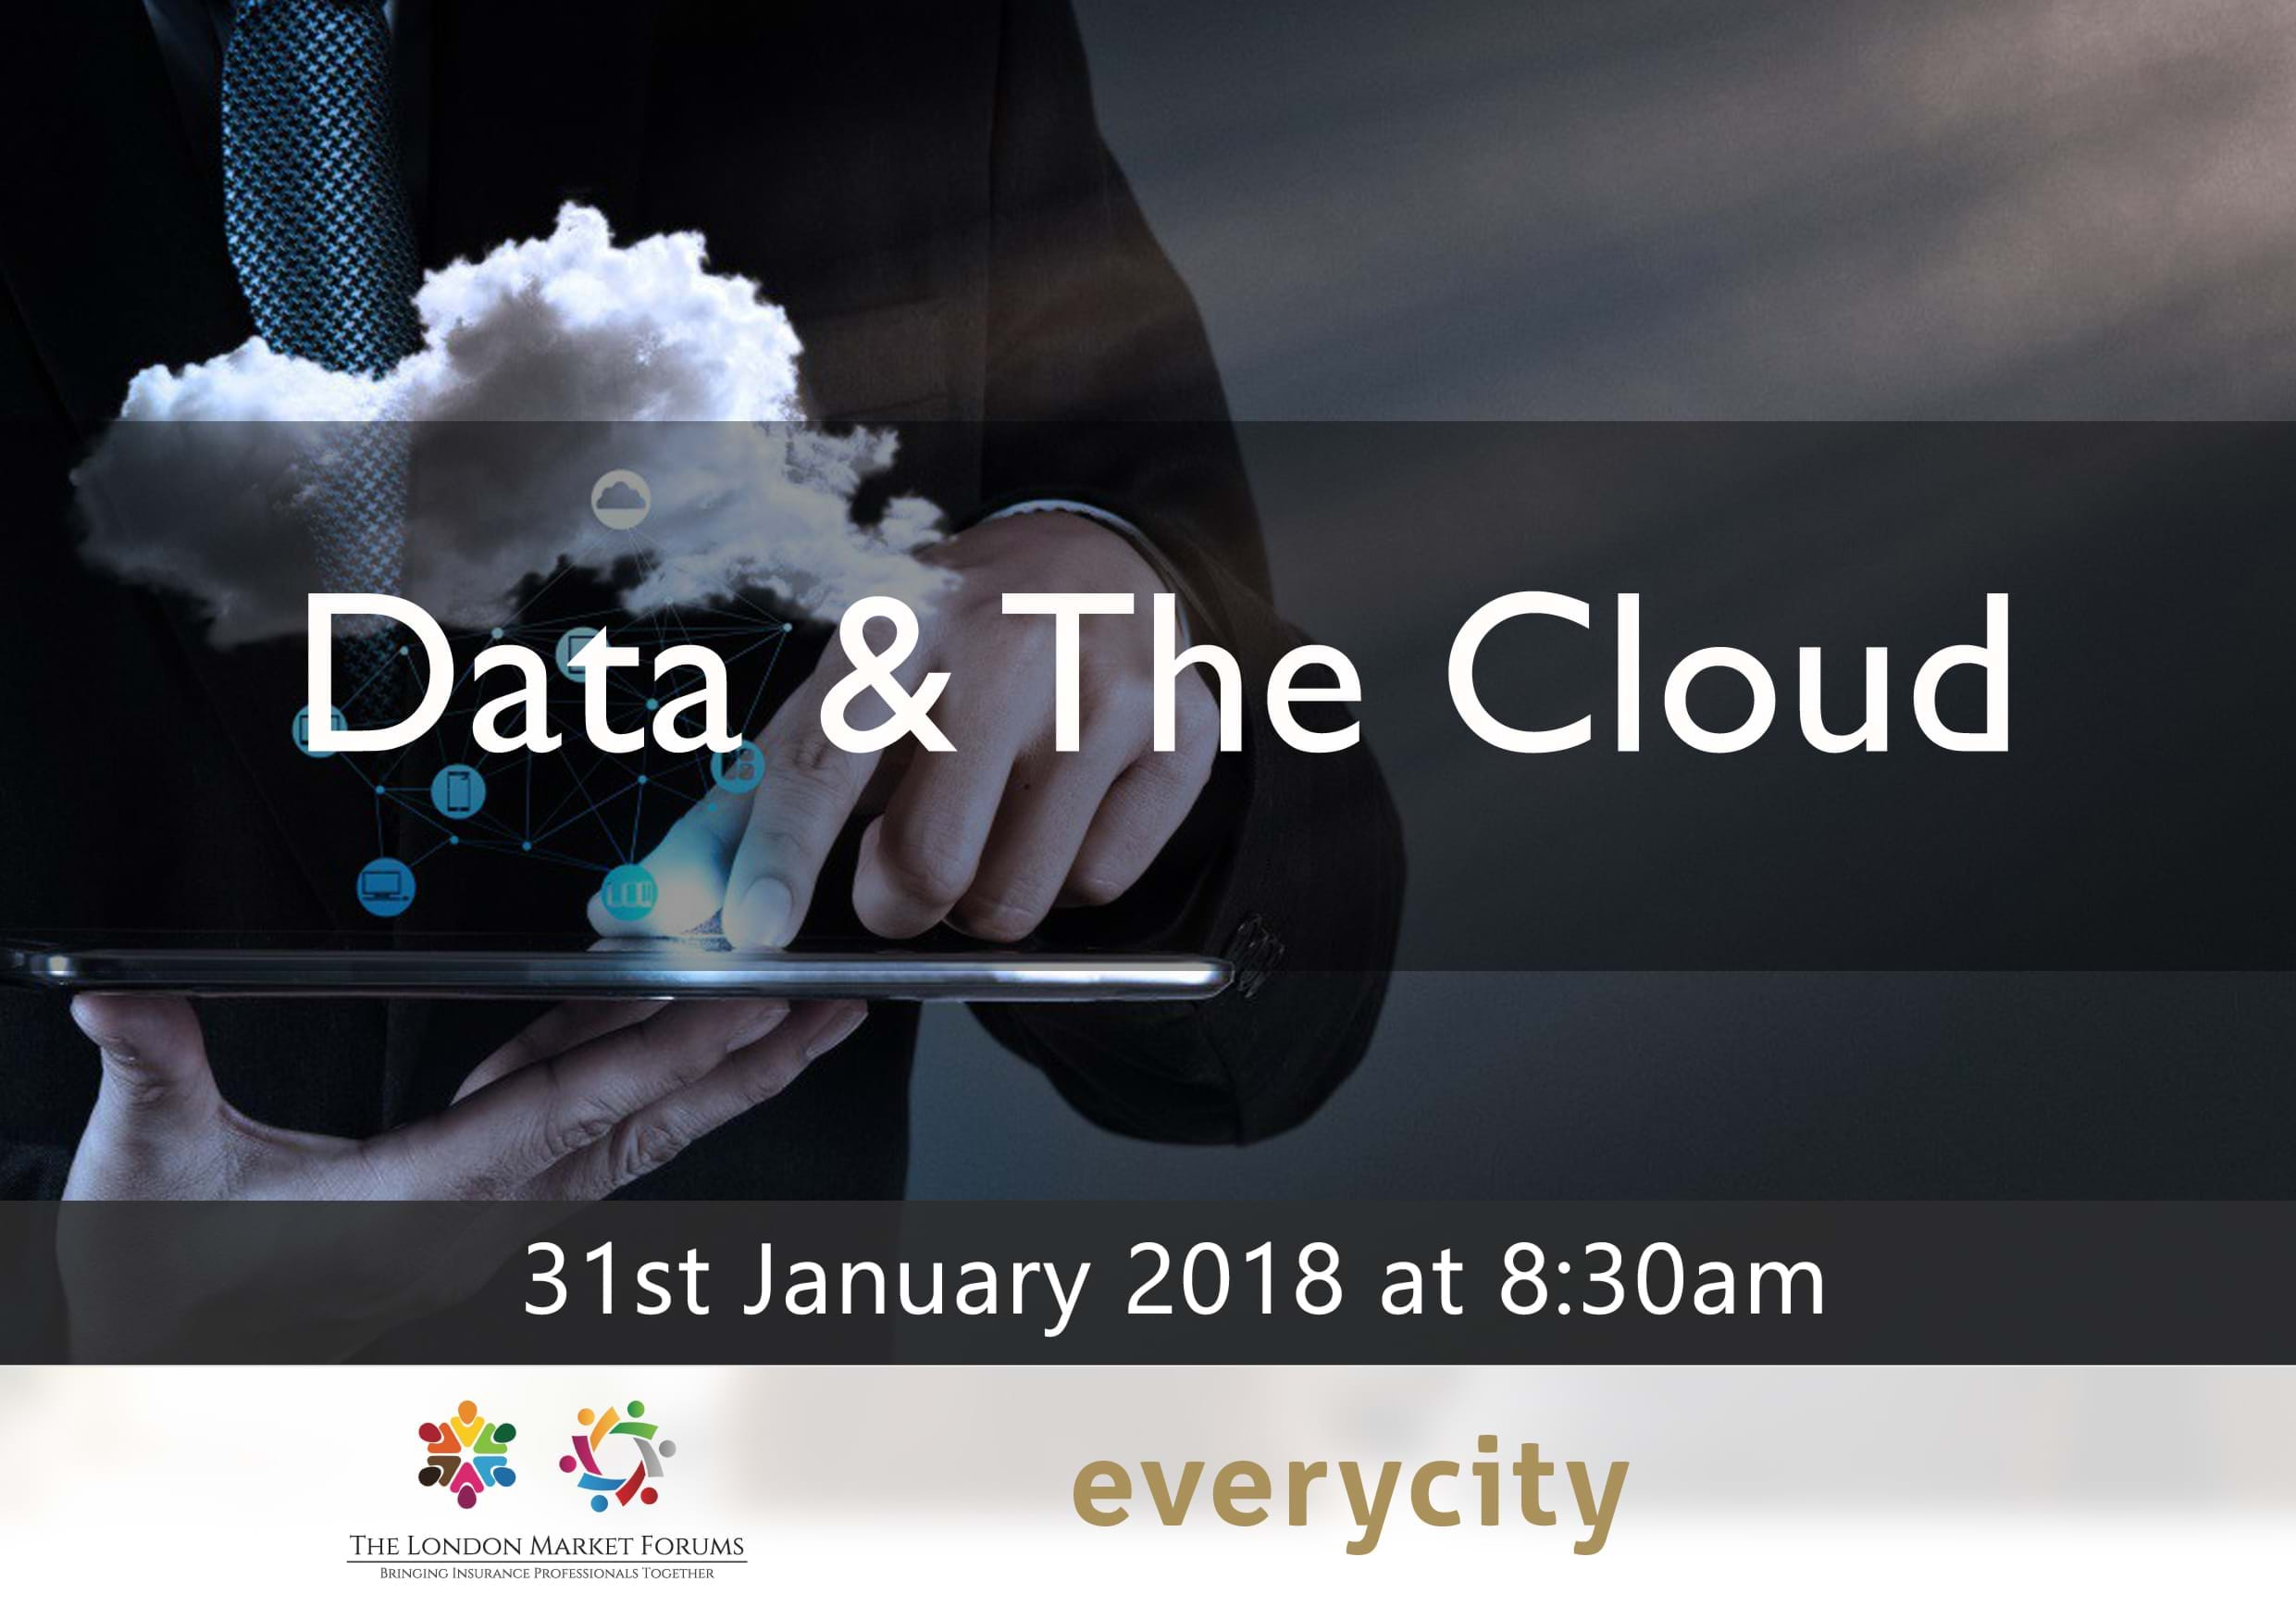 Data & The Cloud